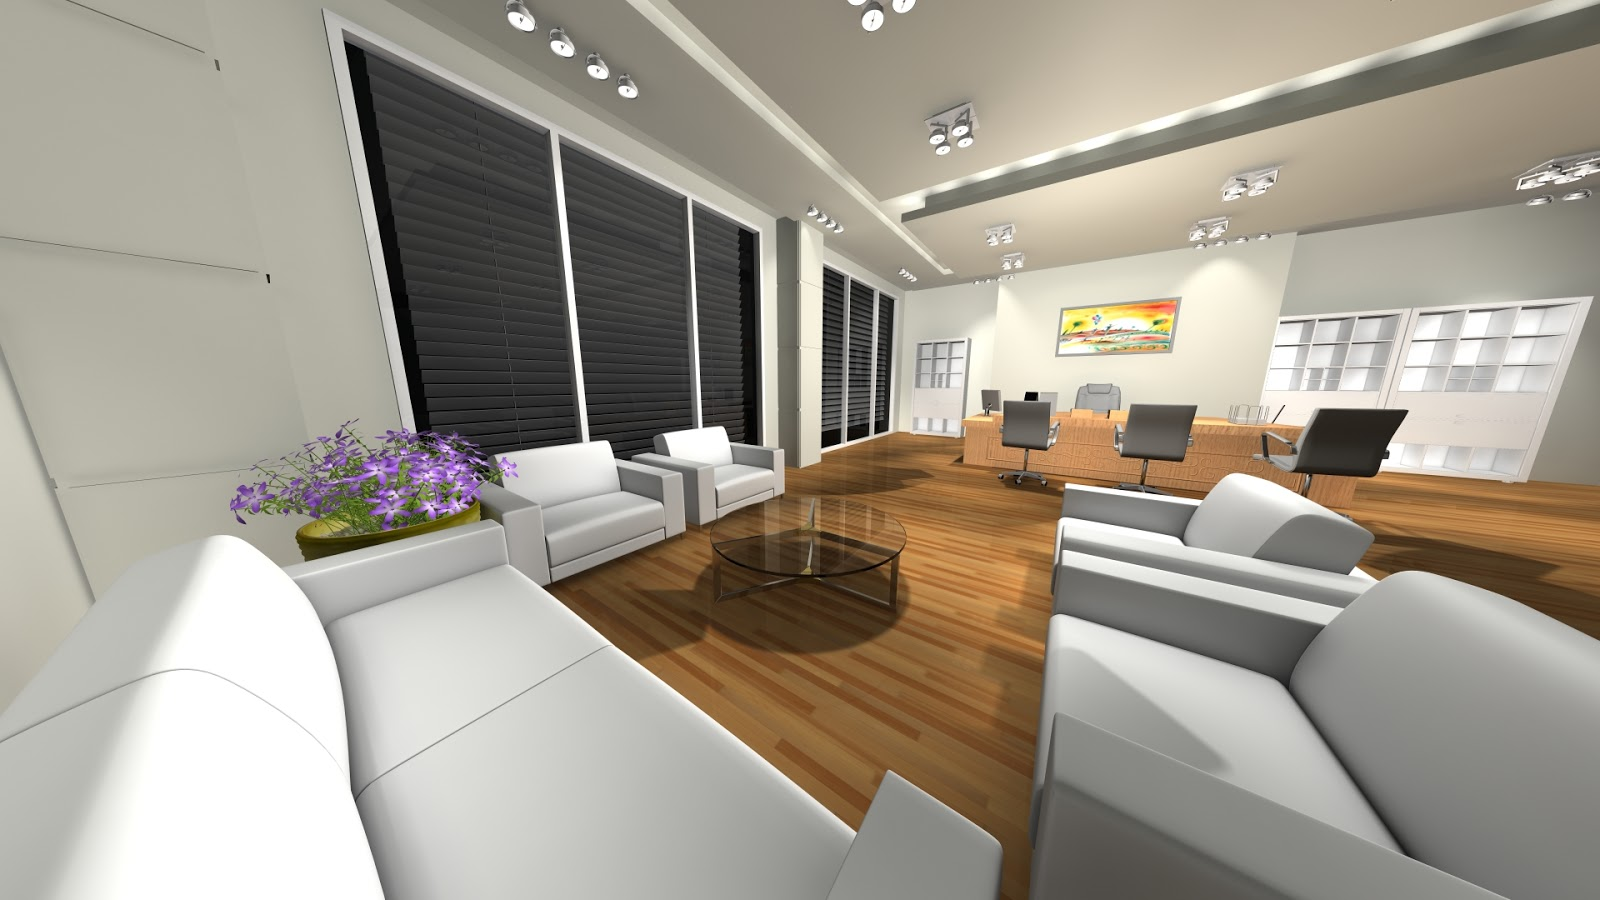 Sajid designer office room 3d interior design 3ds max for 3d room design mac